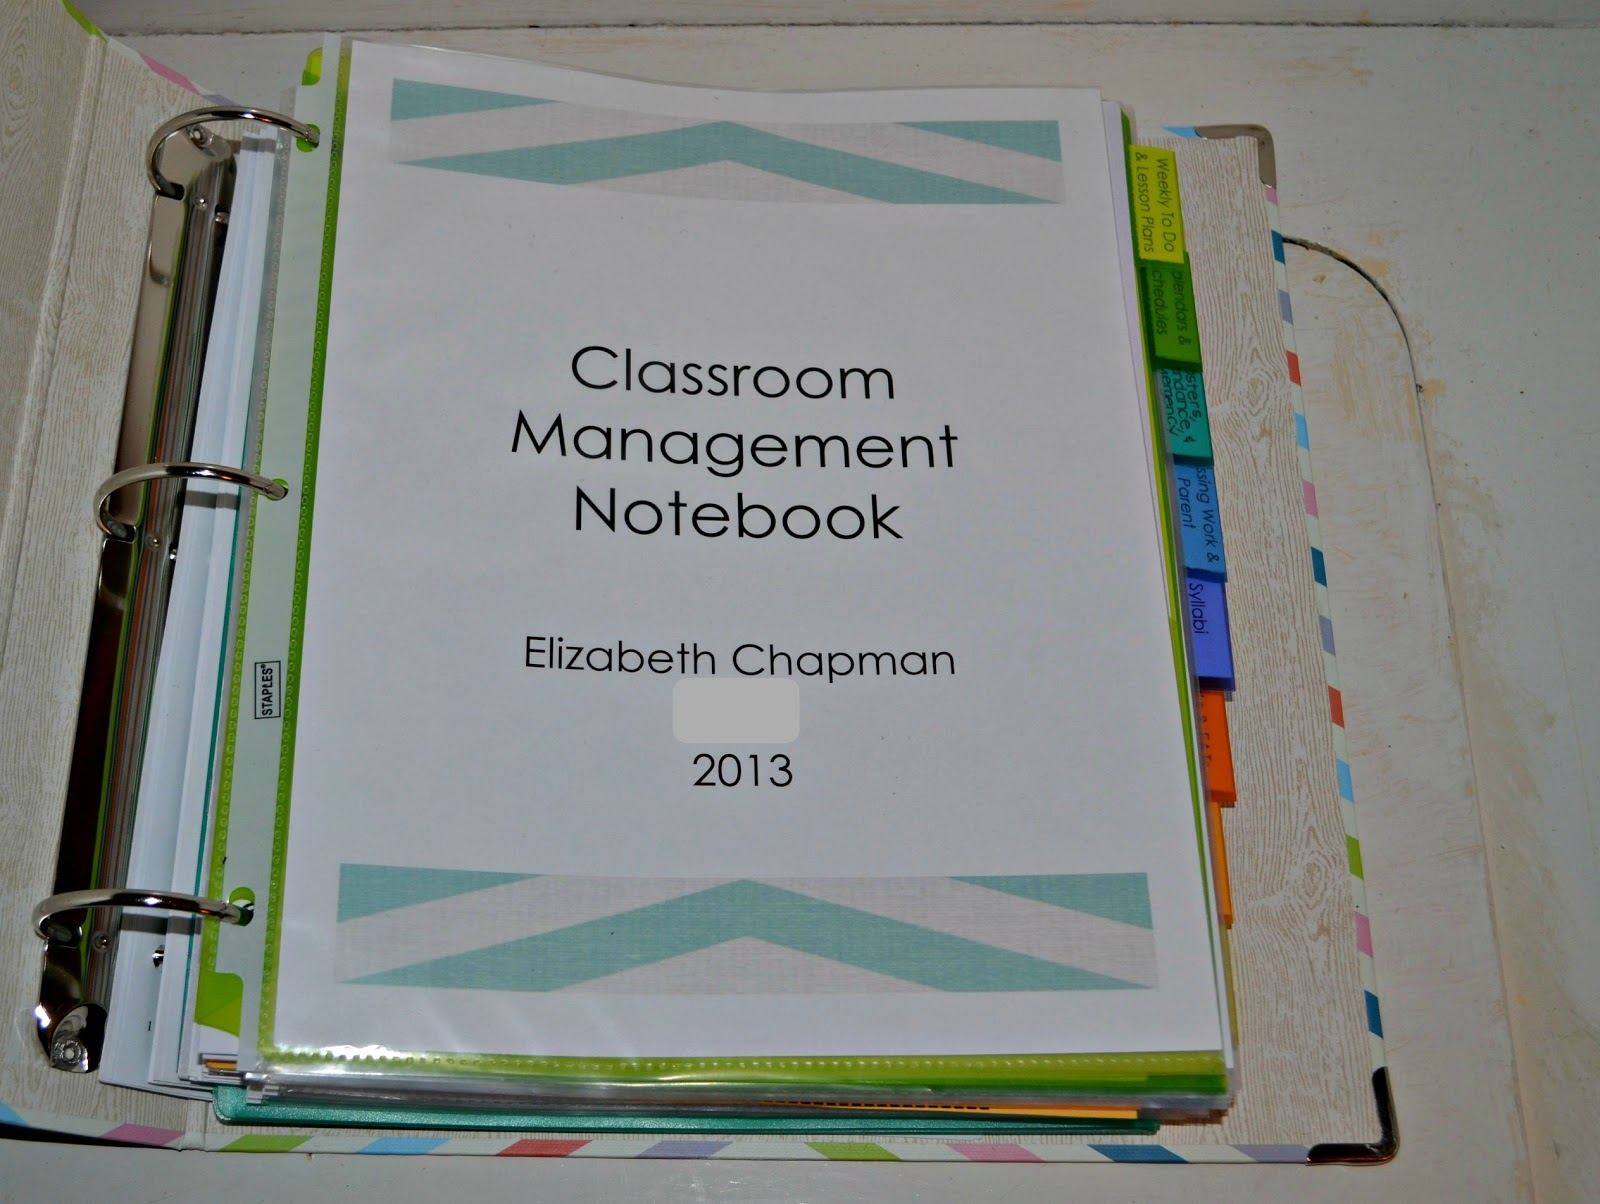 E  Myself  and I  Teaching Tuesday  Classroom Organization Binder       Tuesday  August 20  2013